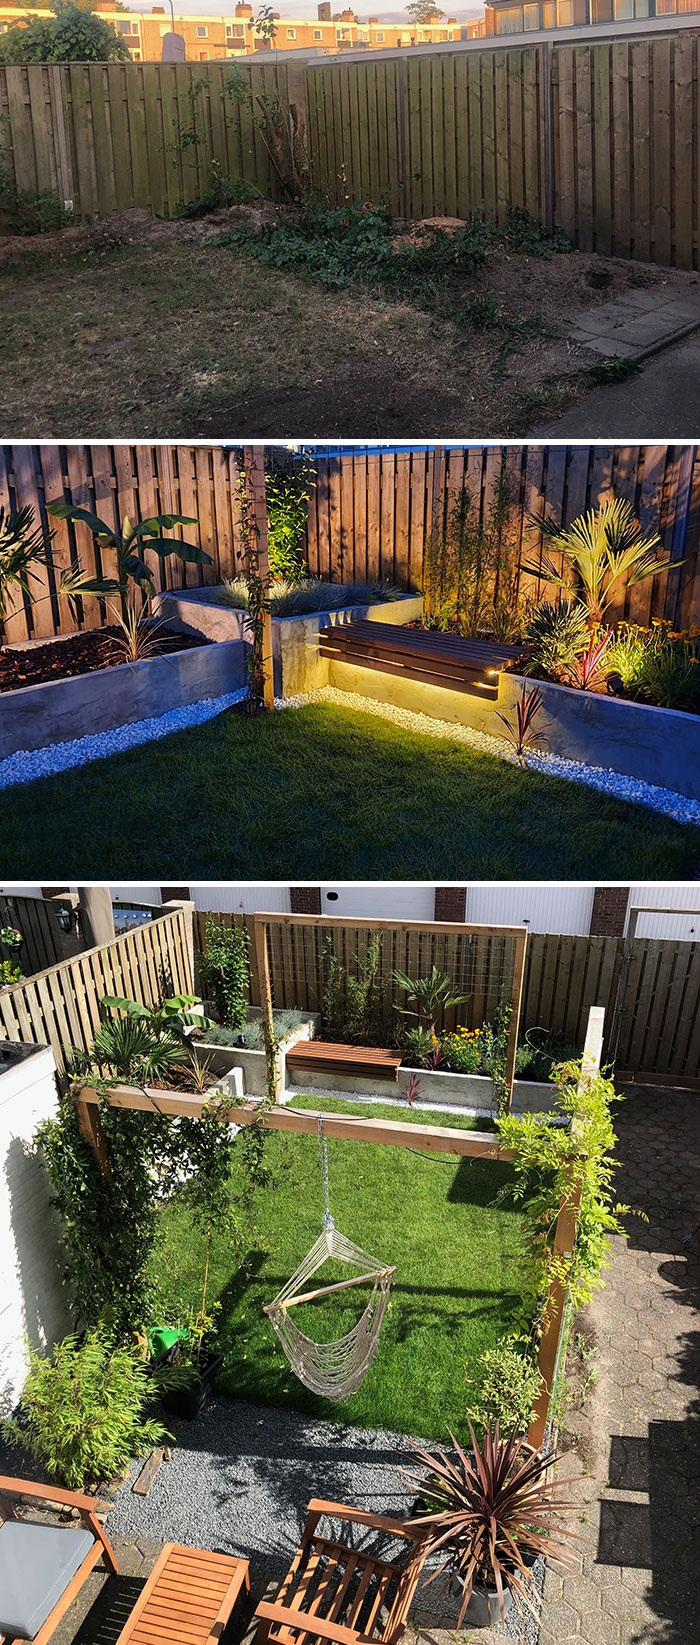 Before And After Lockdown Backyard